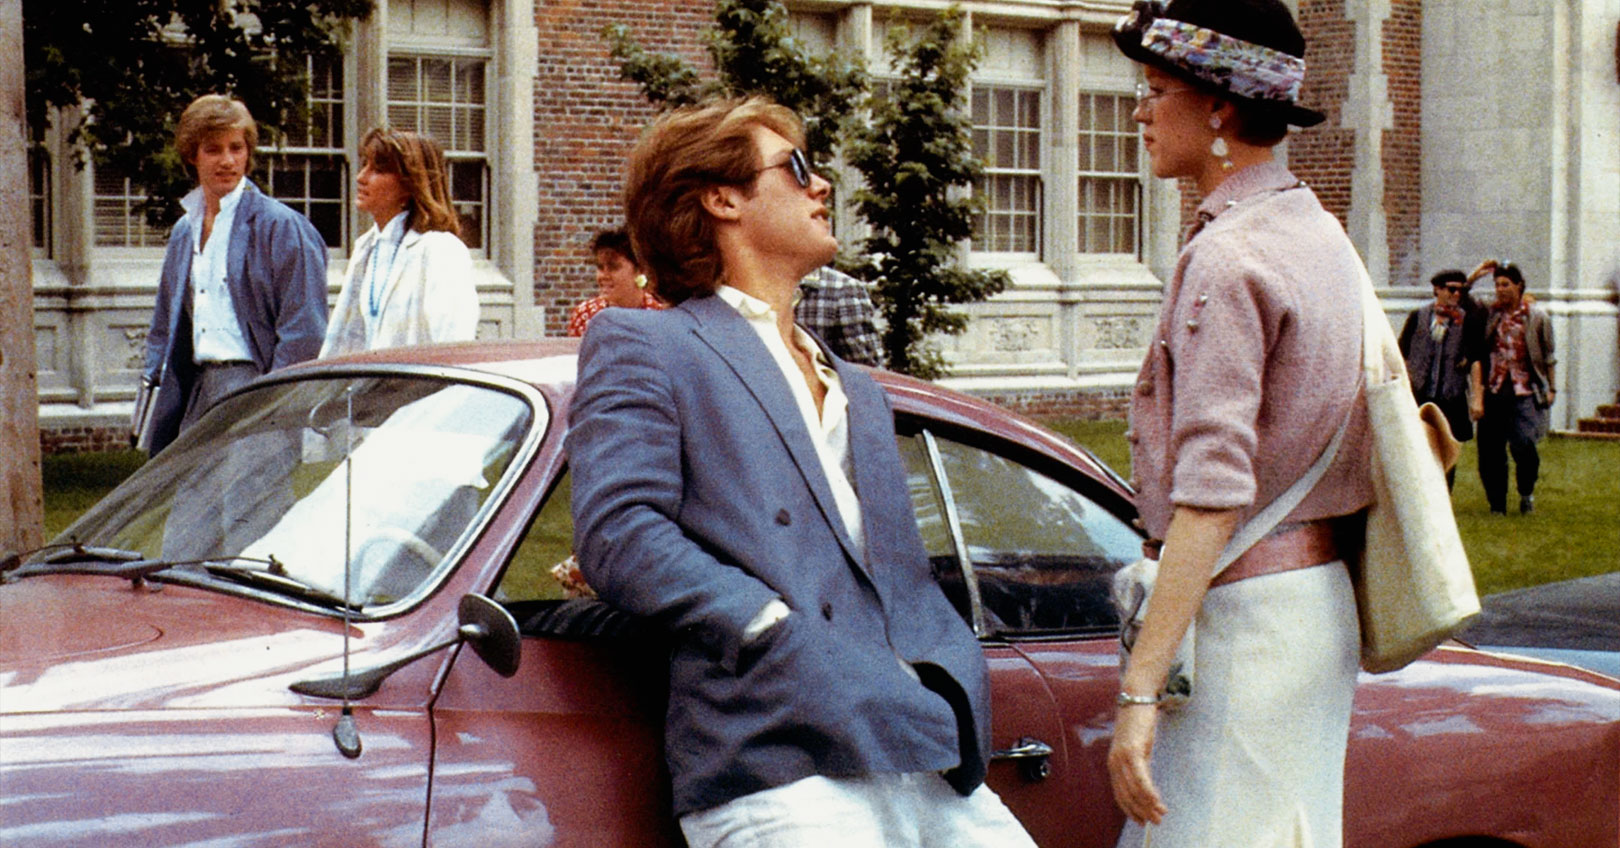 Pretty in Pink - James Spader and Molly Ringwald